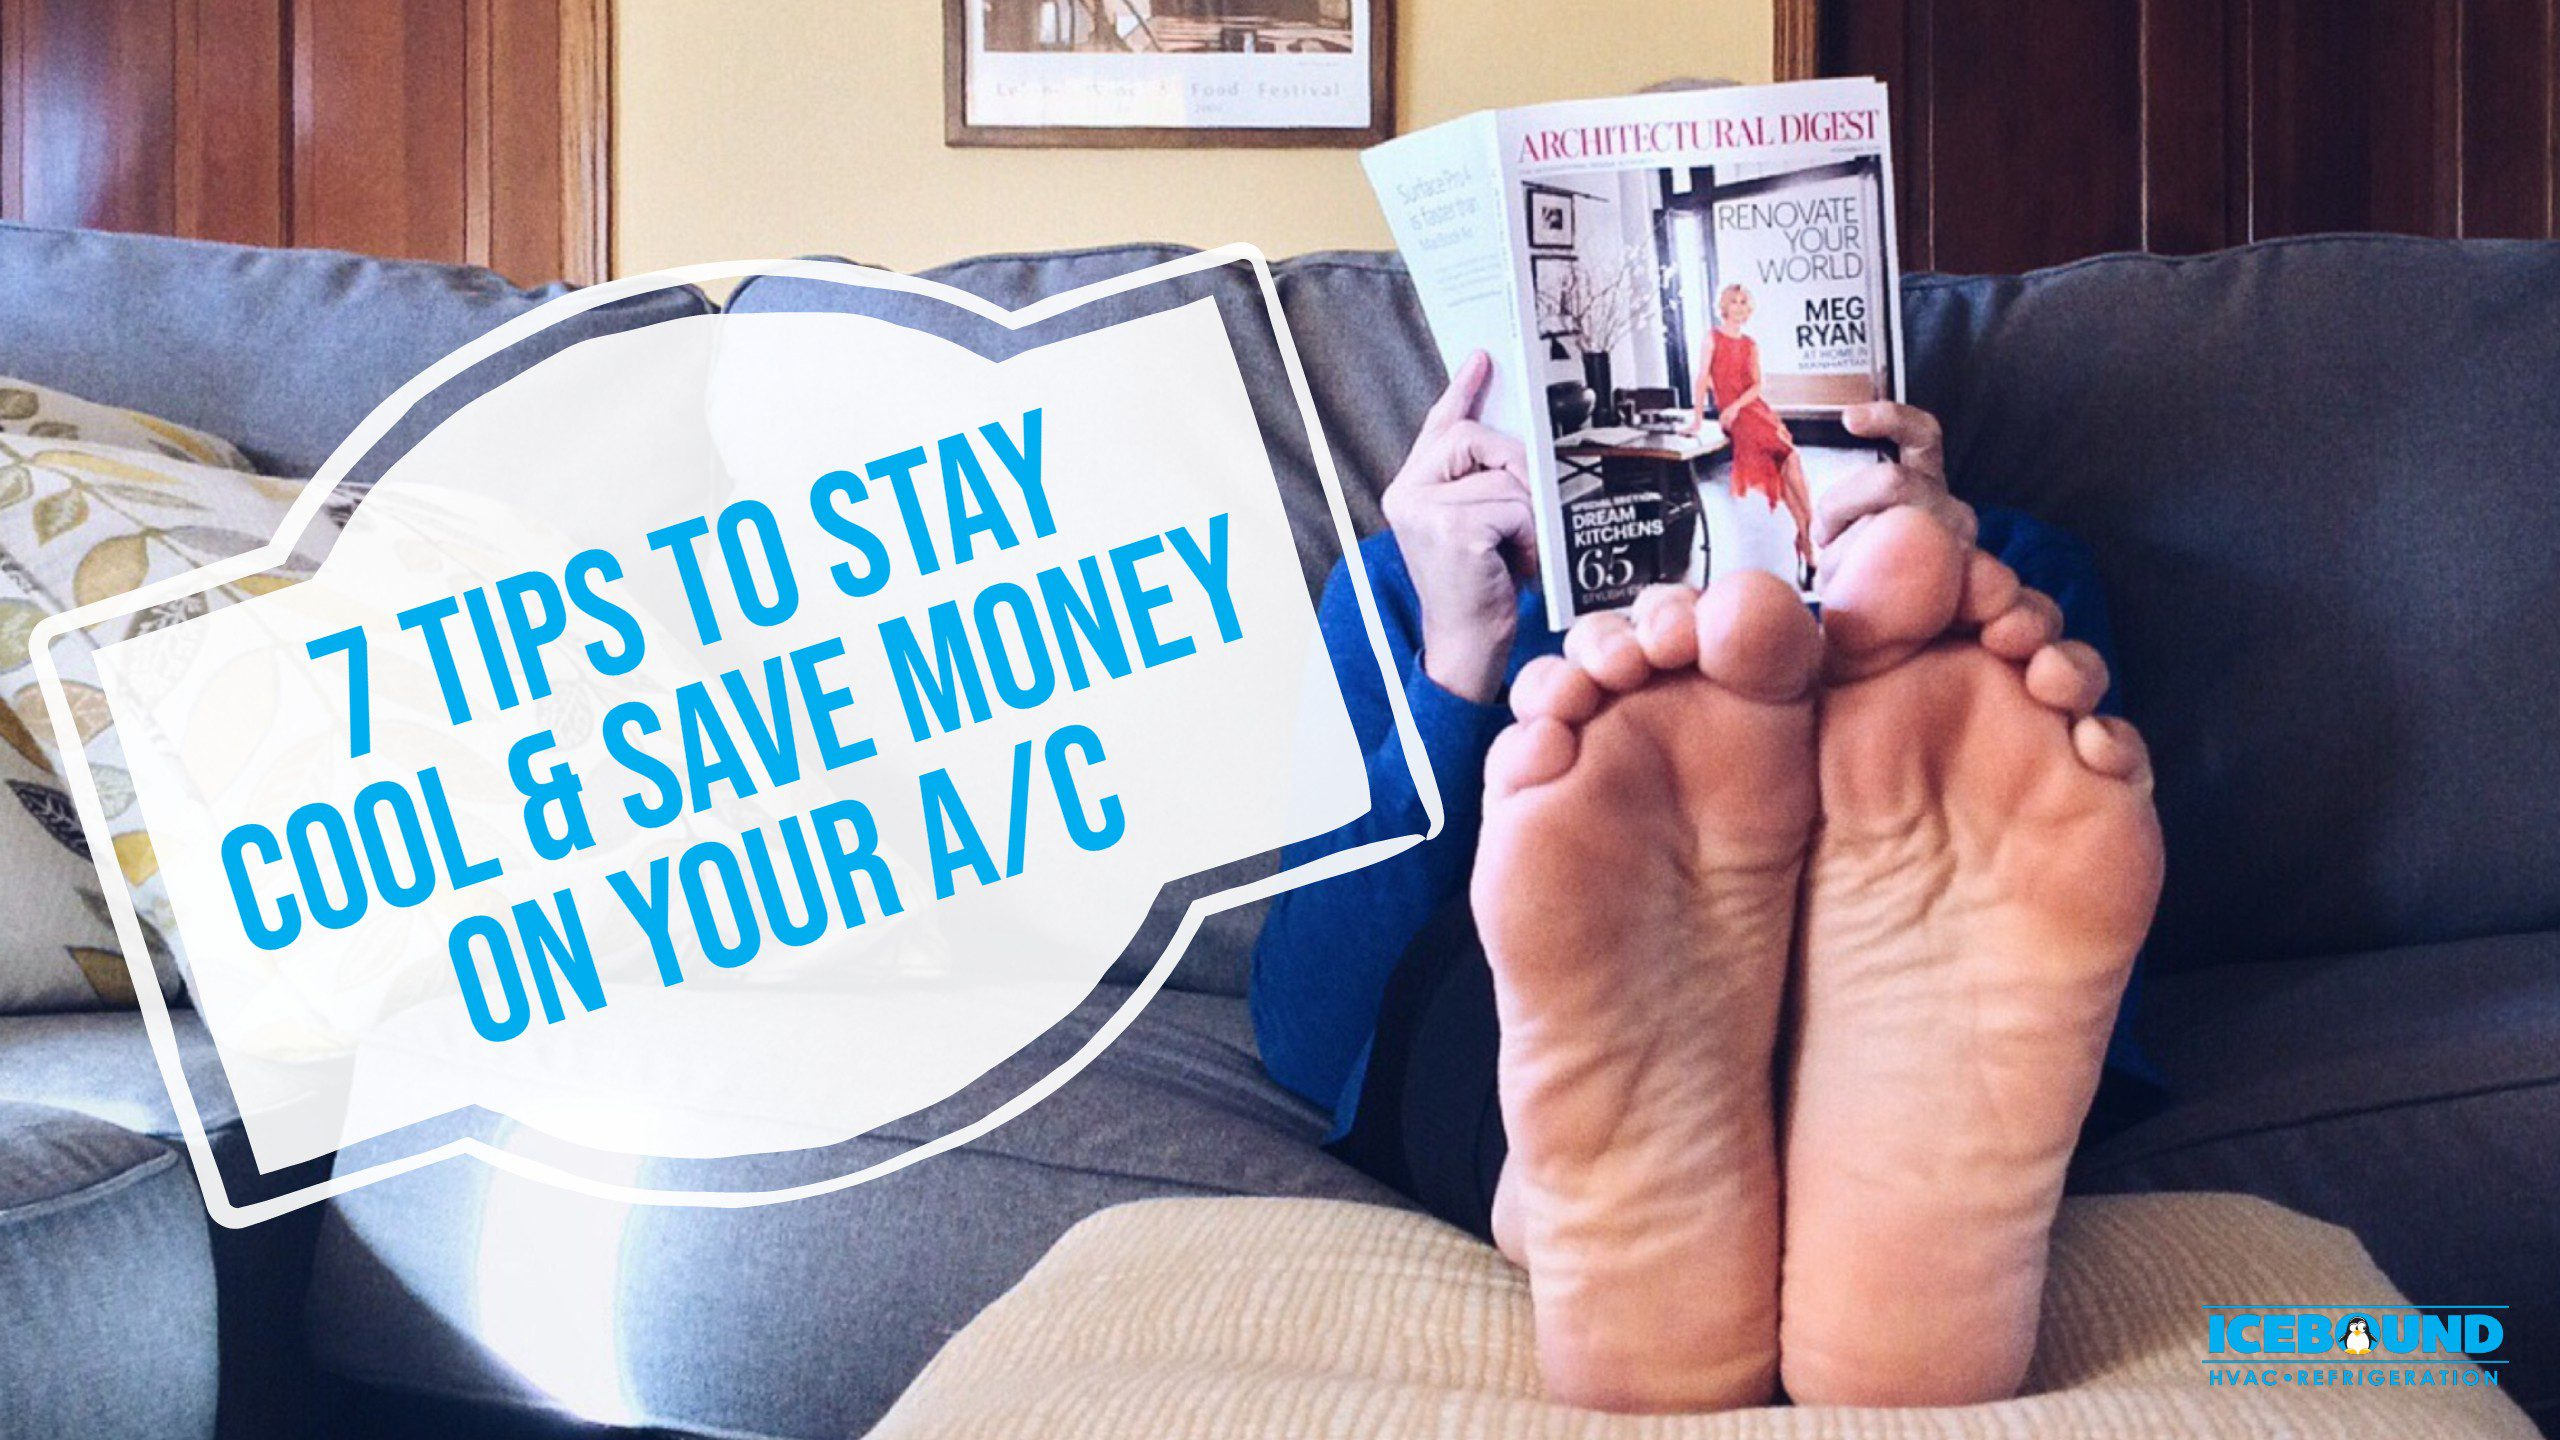 Tips on how to save money on your air conditioning unit.